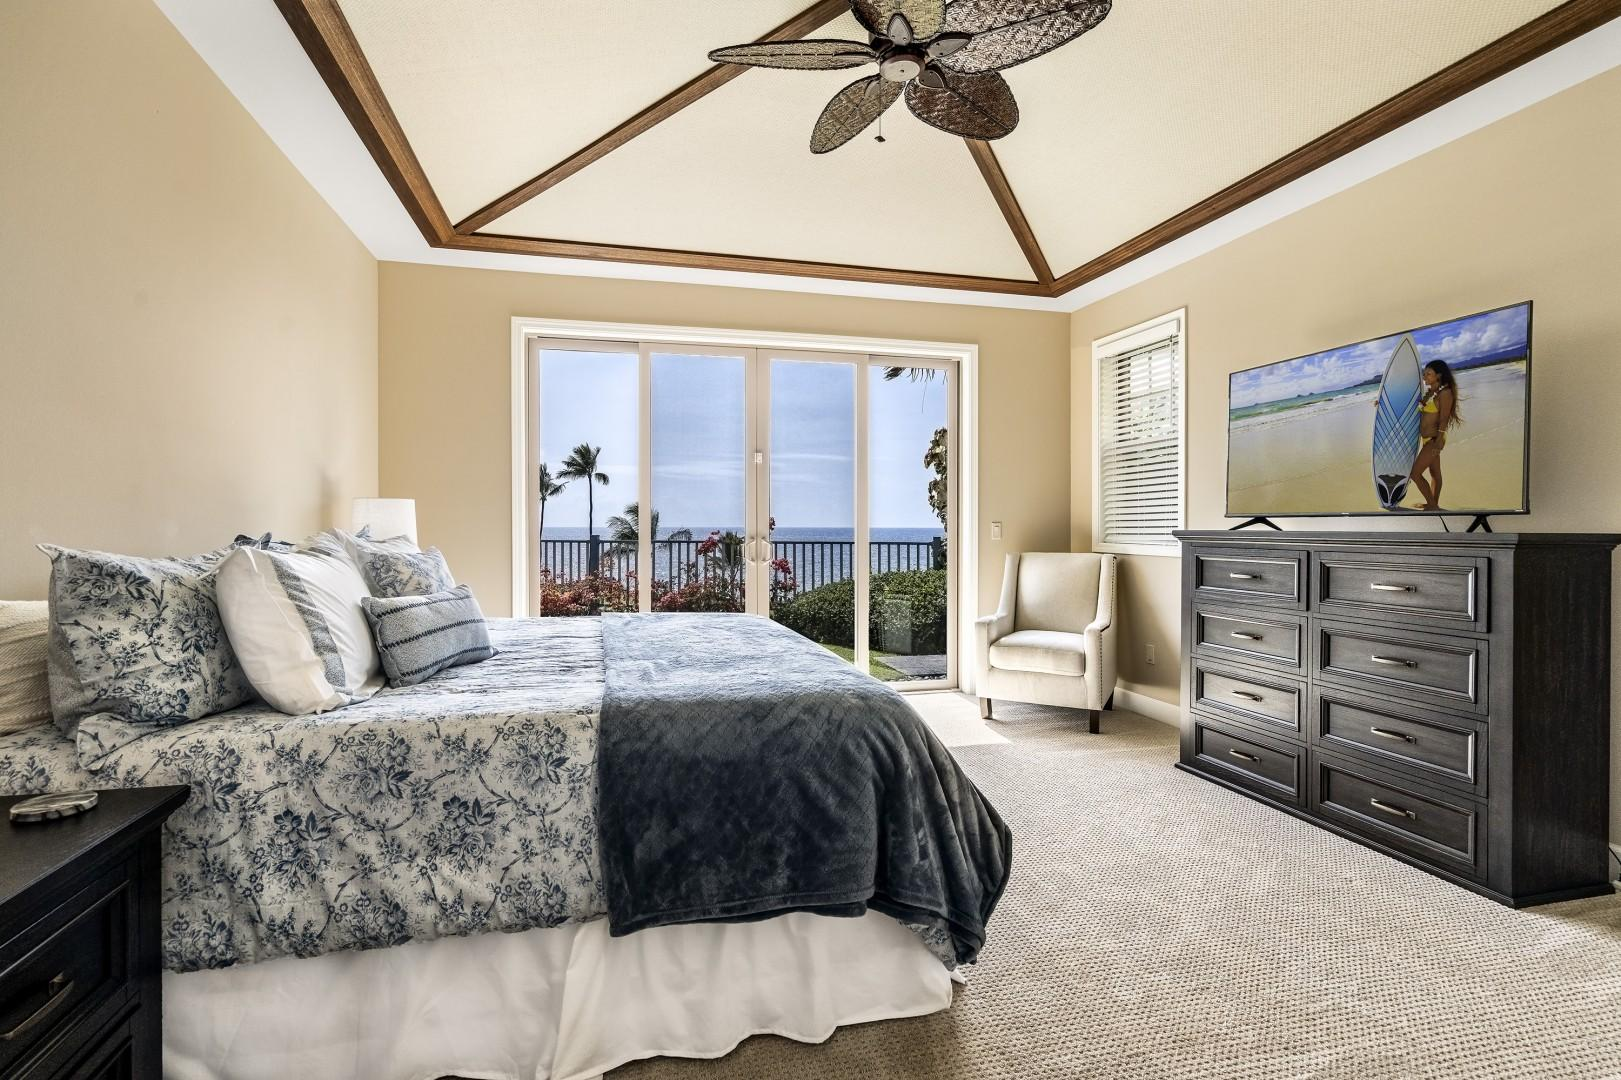 Take in the breathtaking views right from bed!